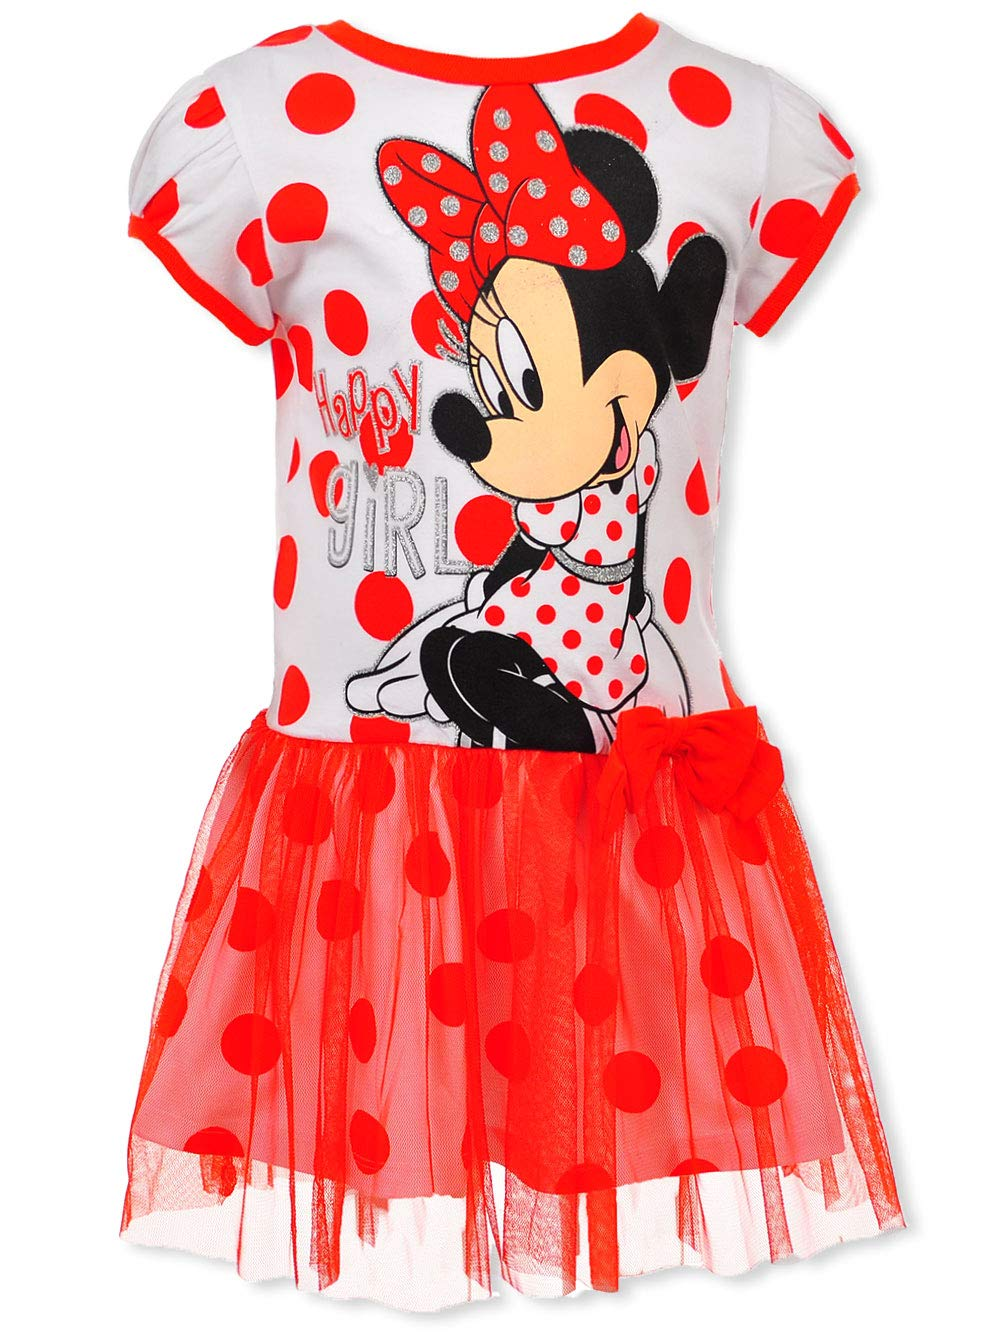 Disney Toddler/Little Girls' Minnie Mouse Tulle Dress